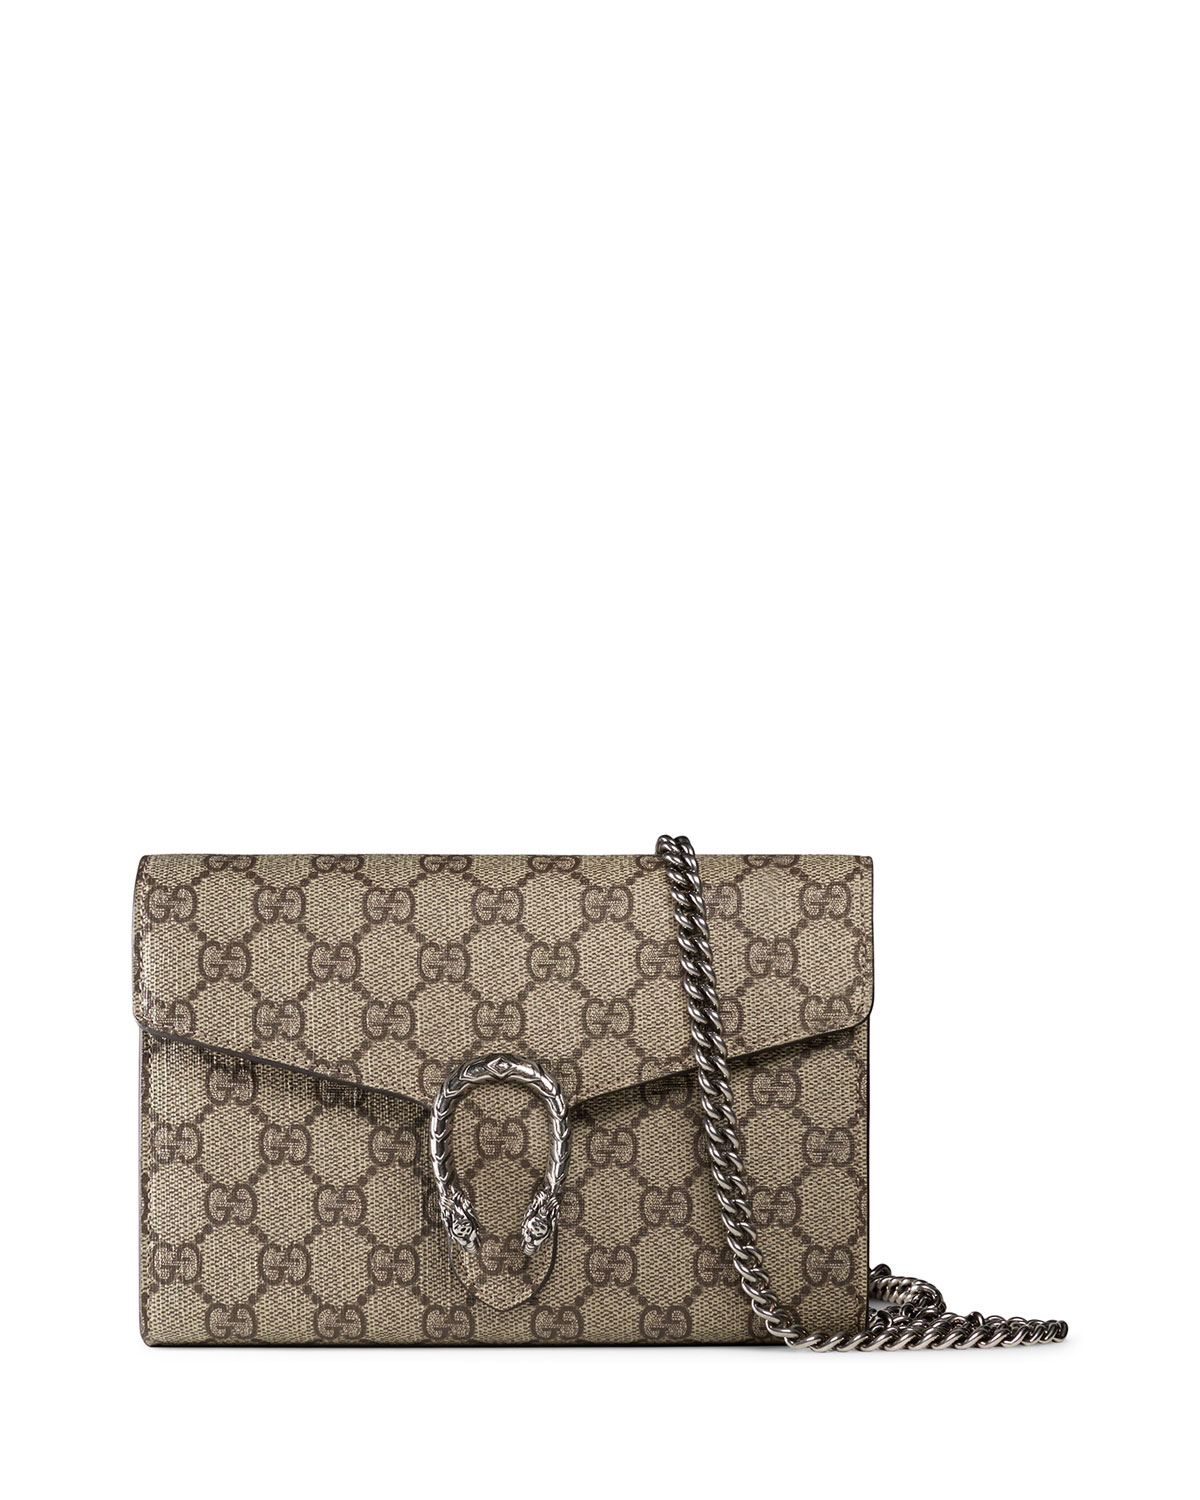 51af77d87c54 Gucci Dionysus Wallet On Chain Canada - Best Photo Wallet ...